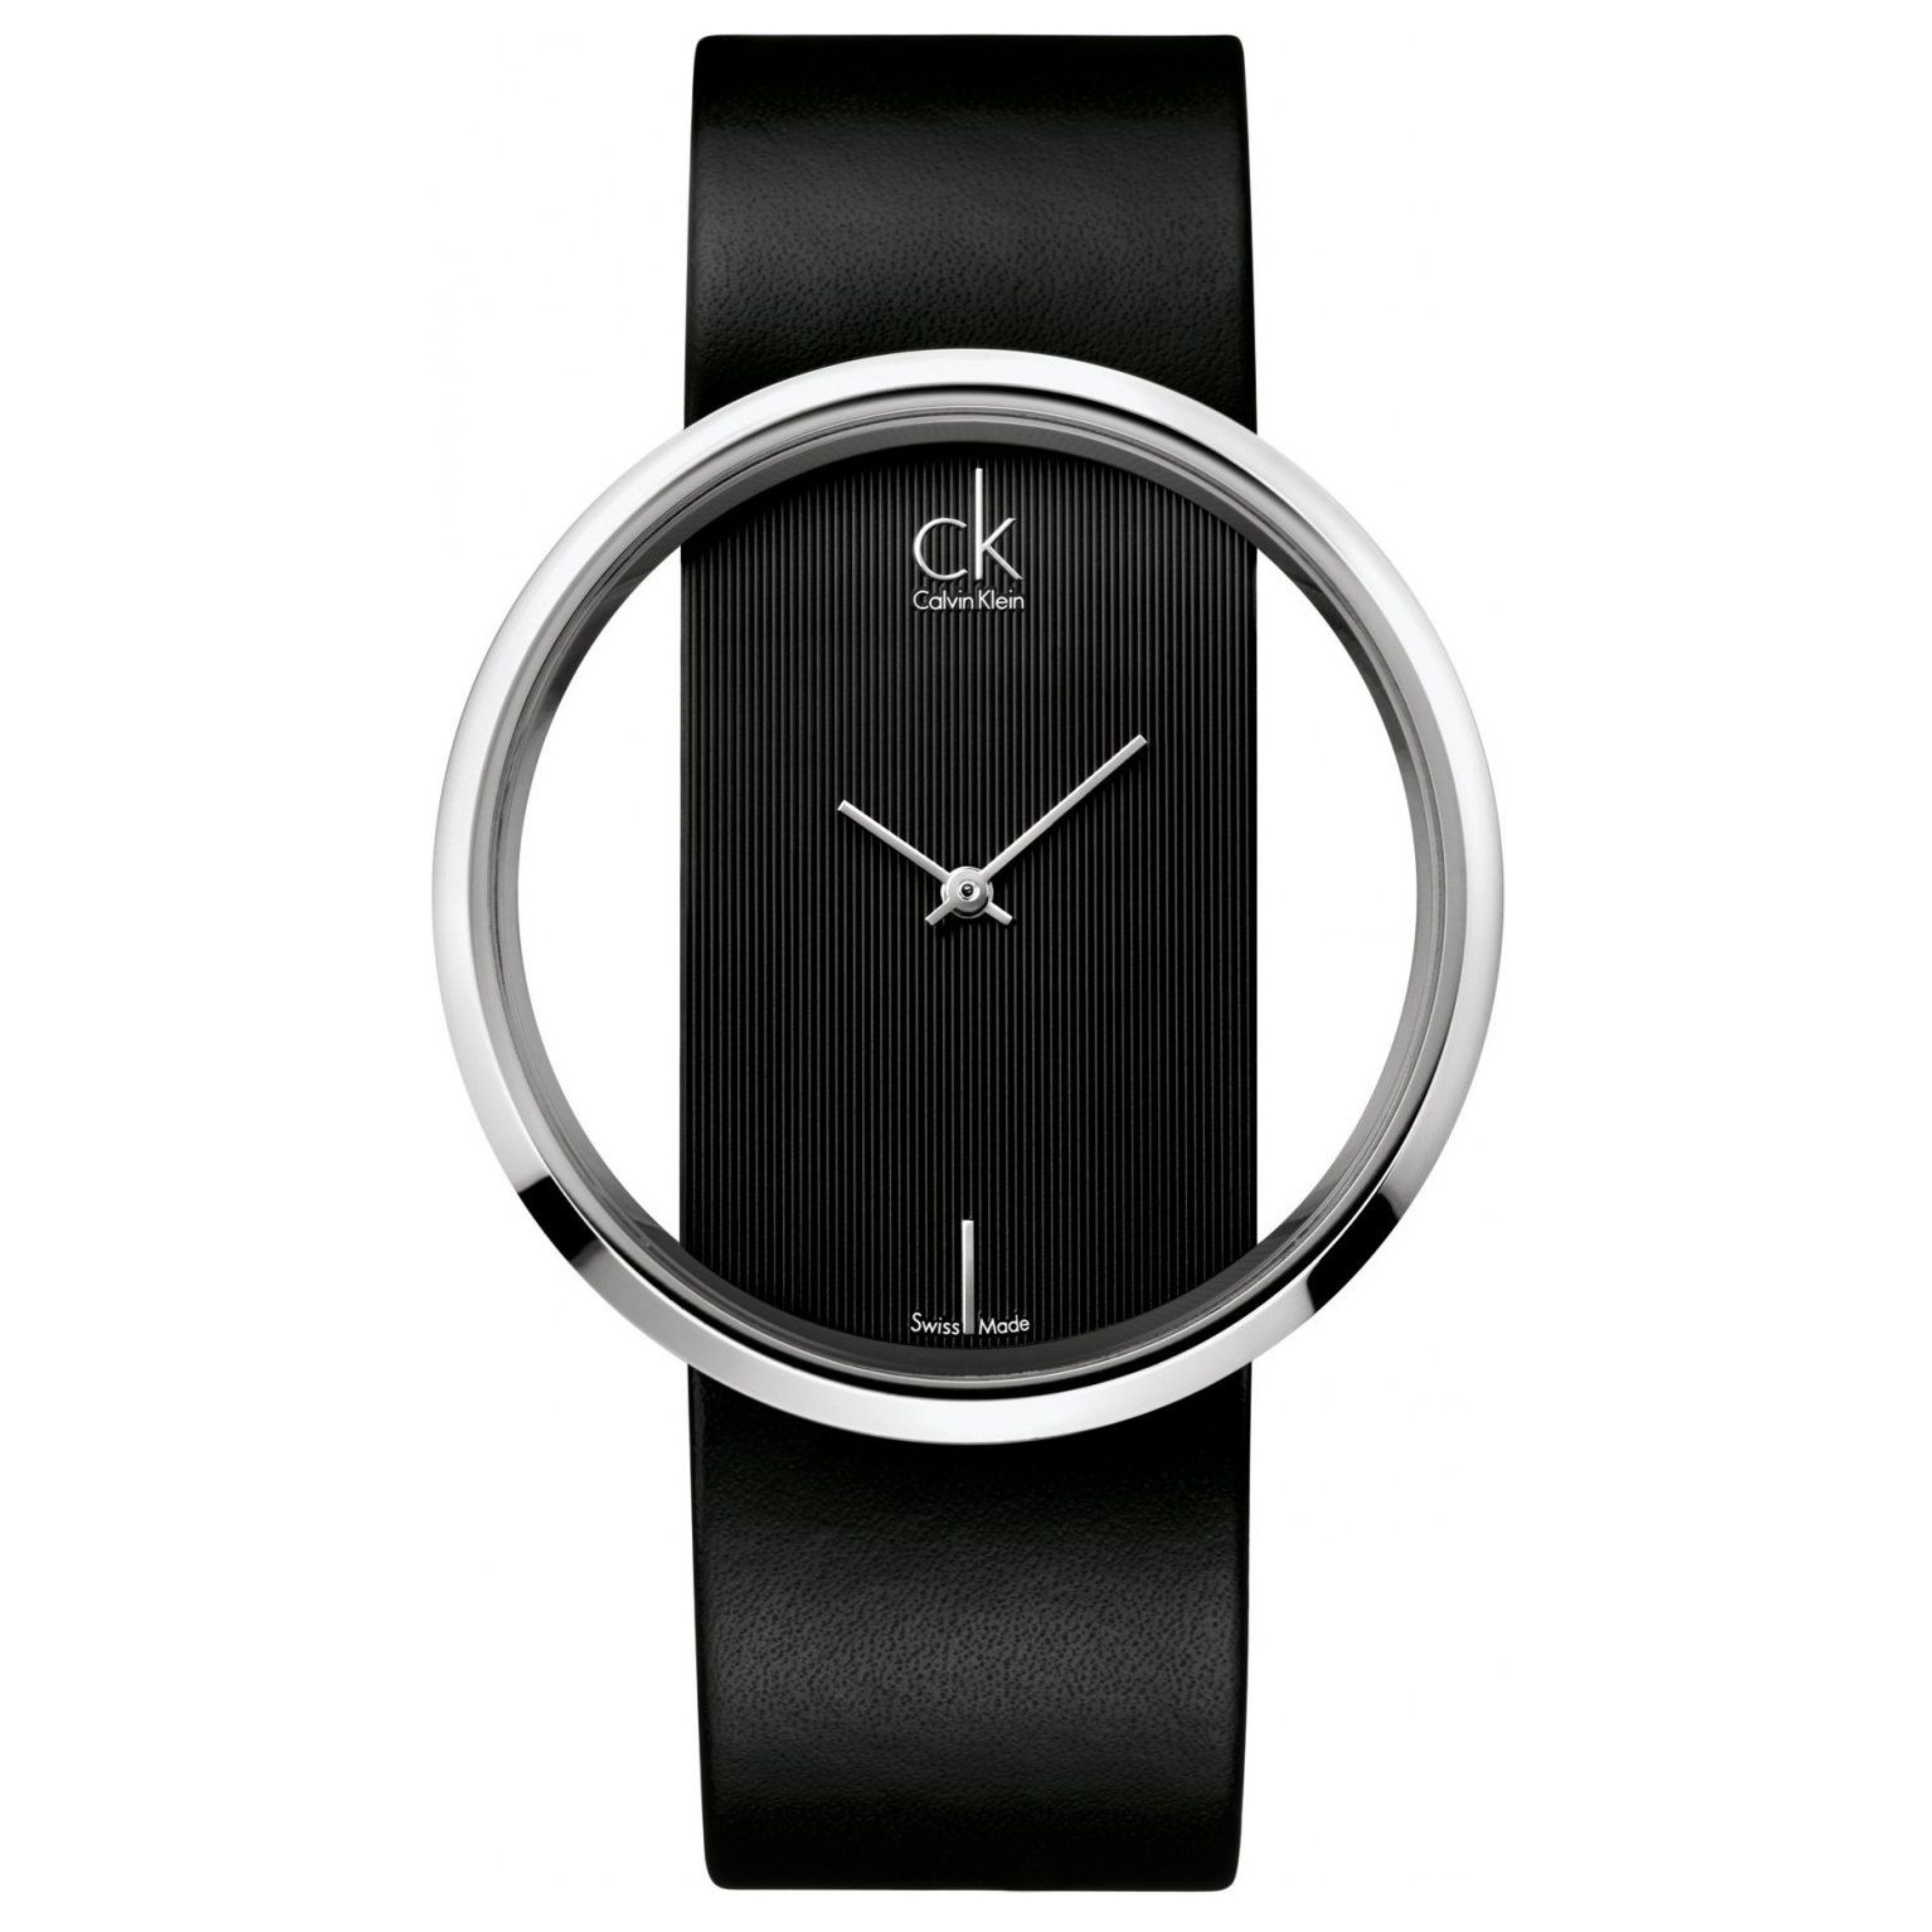 Calvin Klein Ladies Glam Watch K9423107 | Silver Stainless Case | Black Leather Band